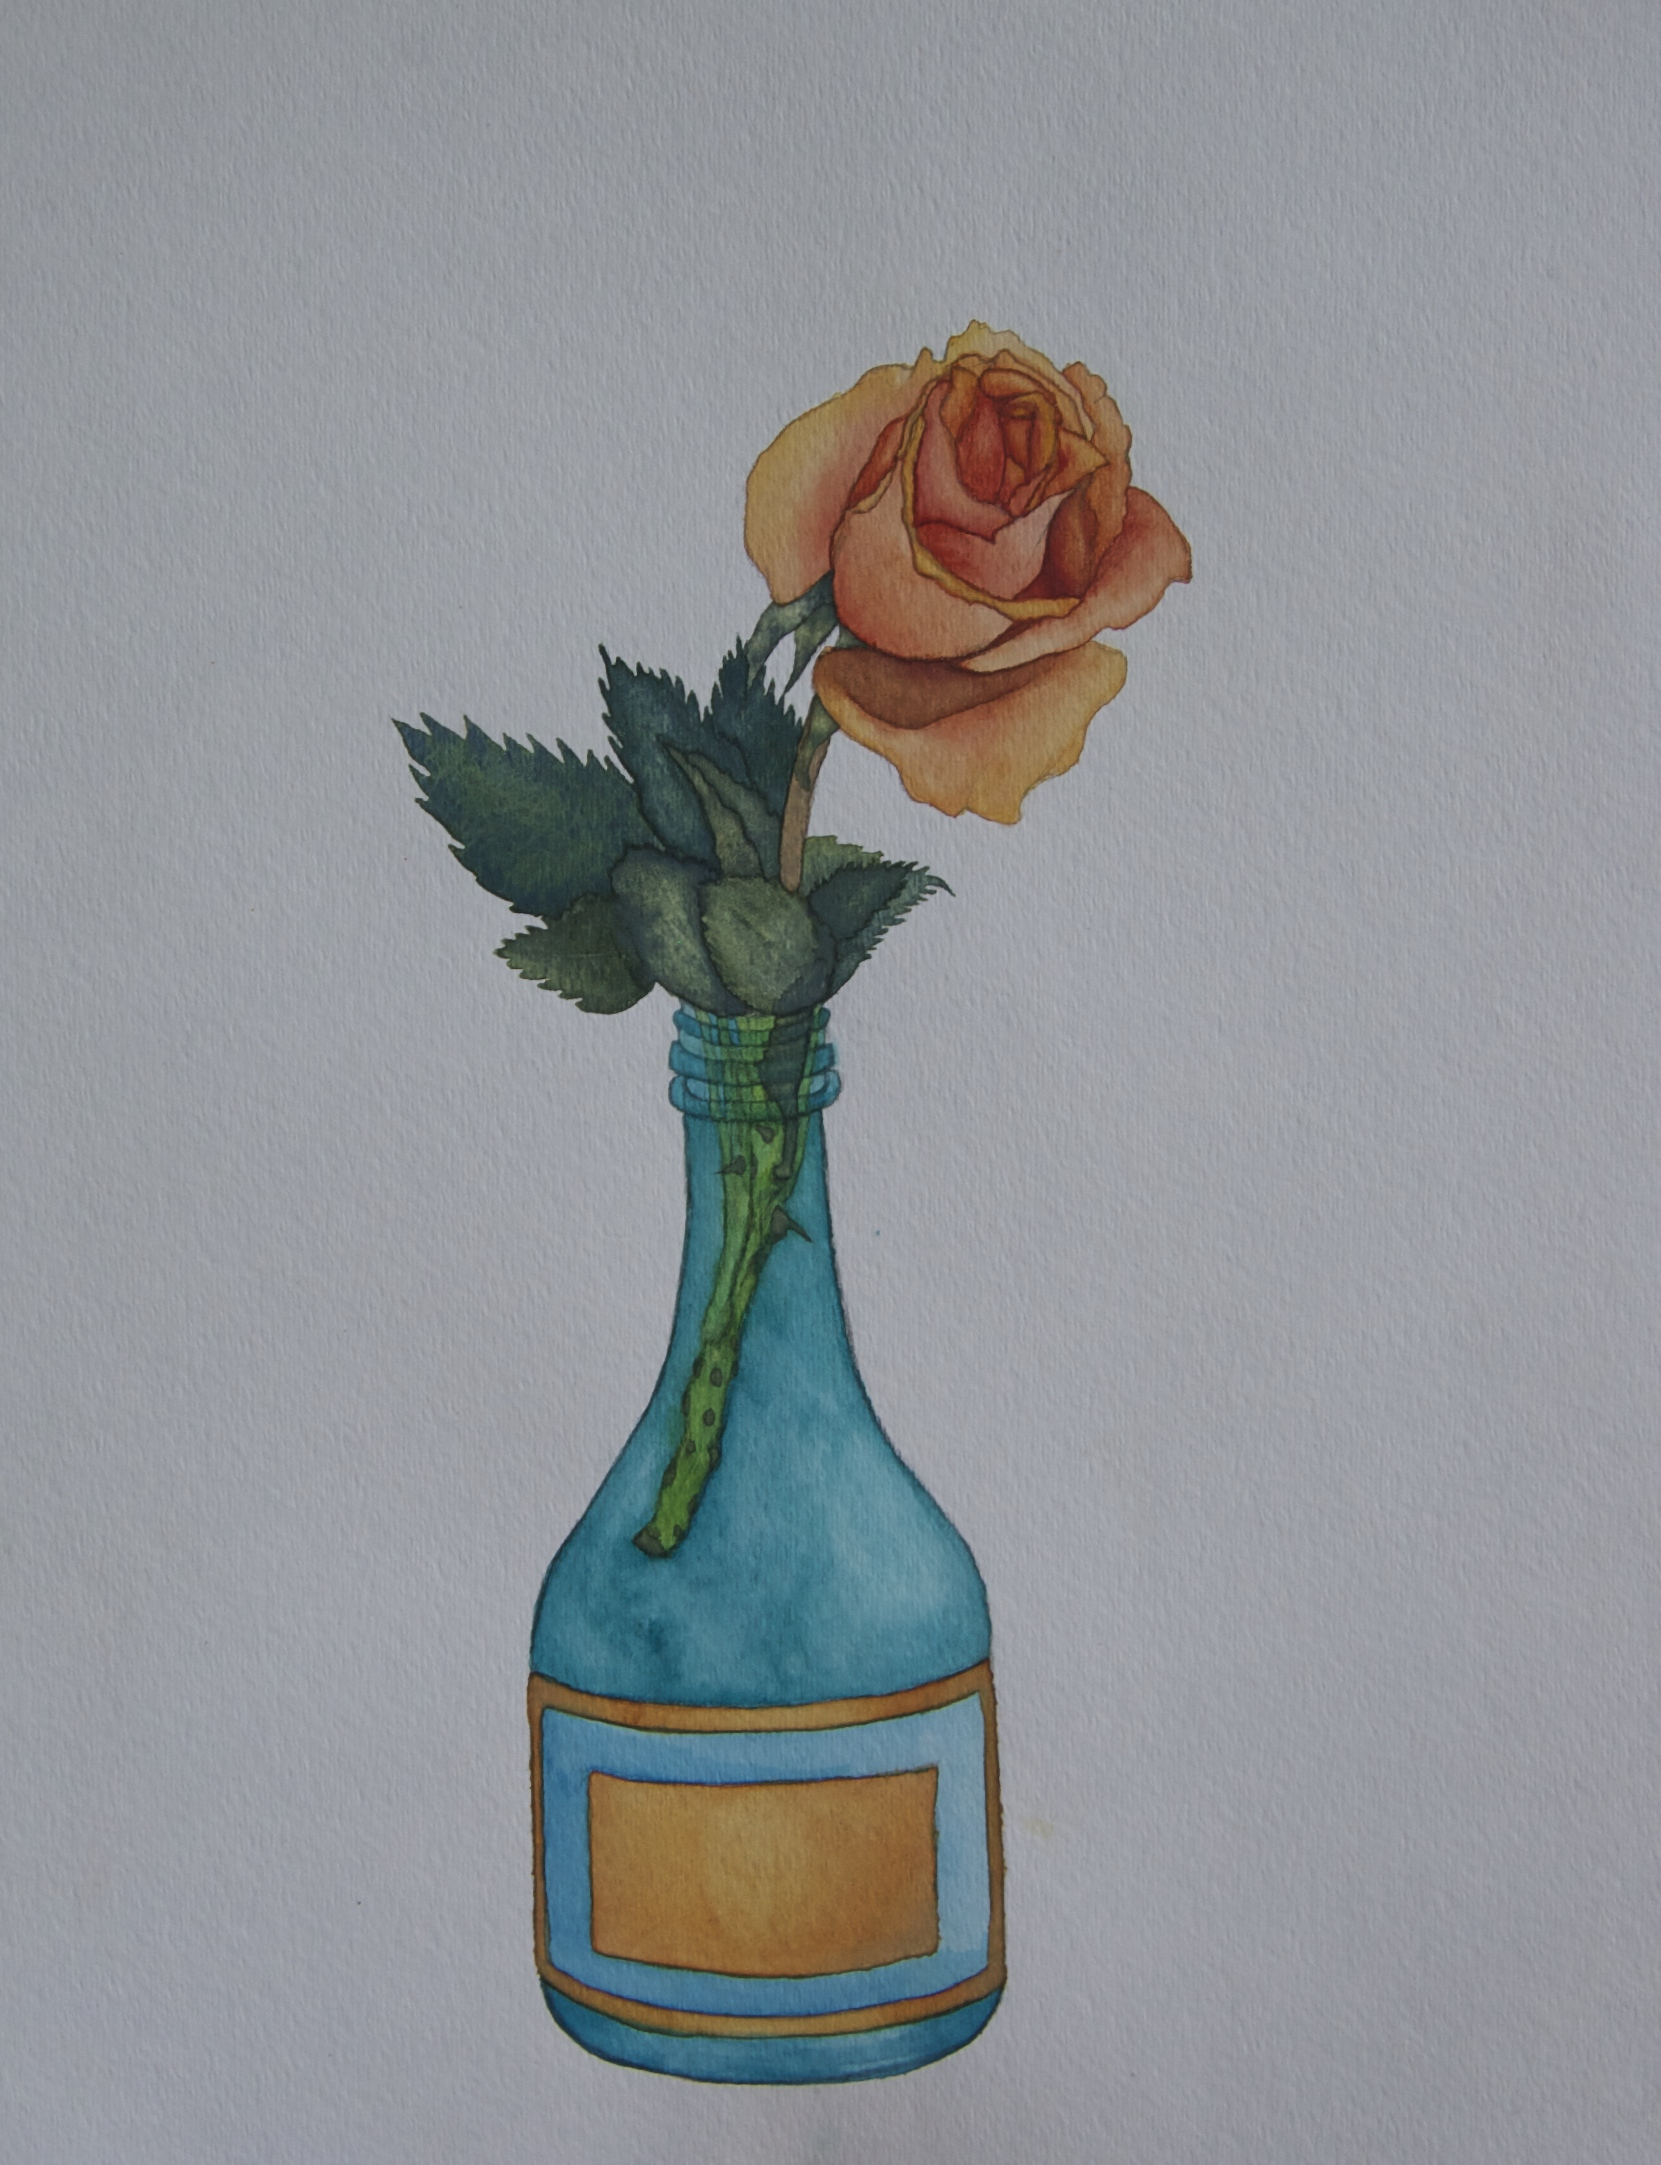 Rose_Watercolor_KatieLindsay.jpg